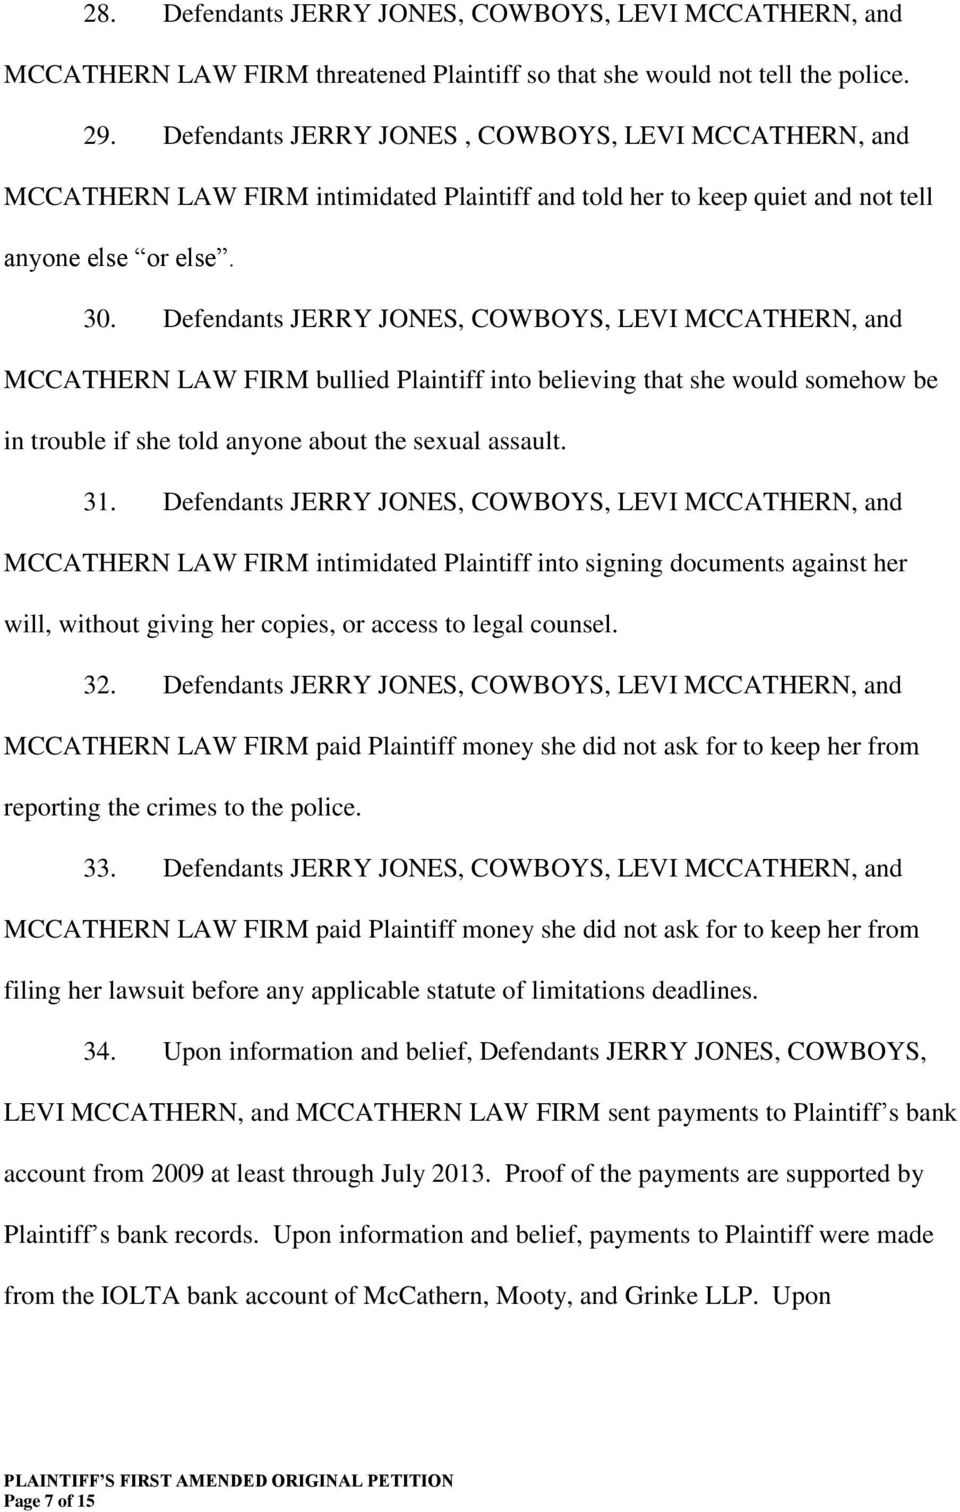 Defendants JERRY JONES, COWBOYS, LEVI MCCATHERN, and MCCATHERN LAW FIRM bullied Plaintiff into believing that she would somehow be in trouble if she told anyone about the sexual assault. 31.